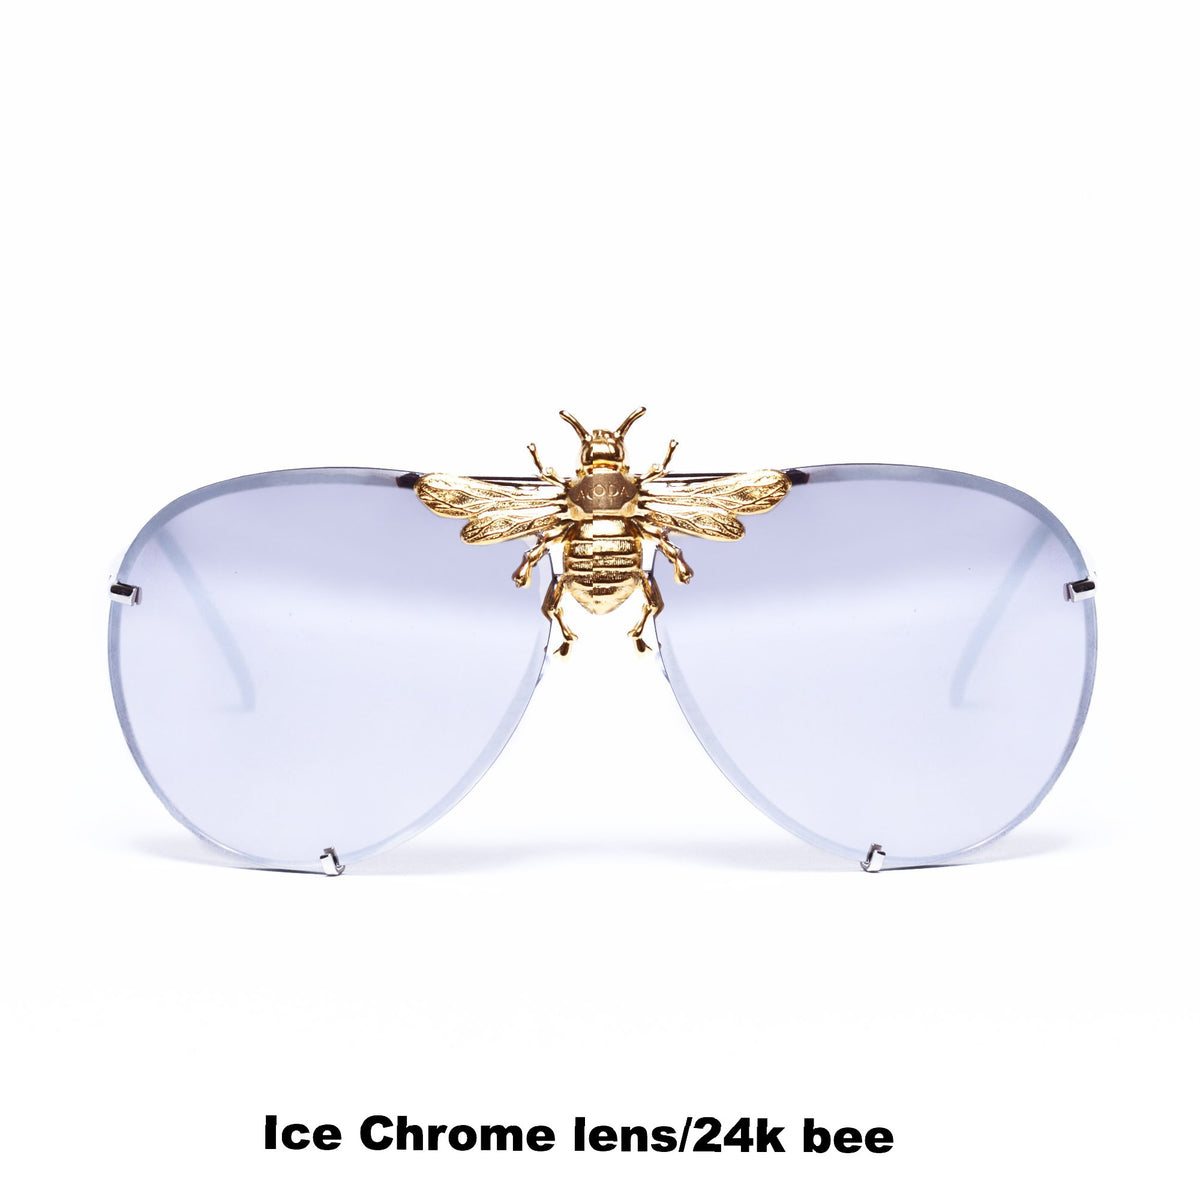 I'll Be Rich Forever Bee Sunglasses - Mirror Luxe Edition  SUNNIES + OPTICS Sunglasses Collection, Tnemnroda man- NRODA